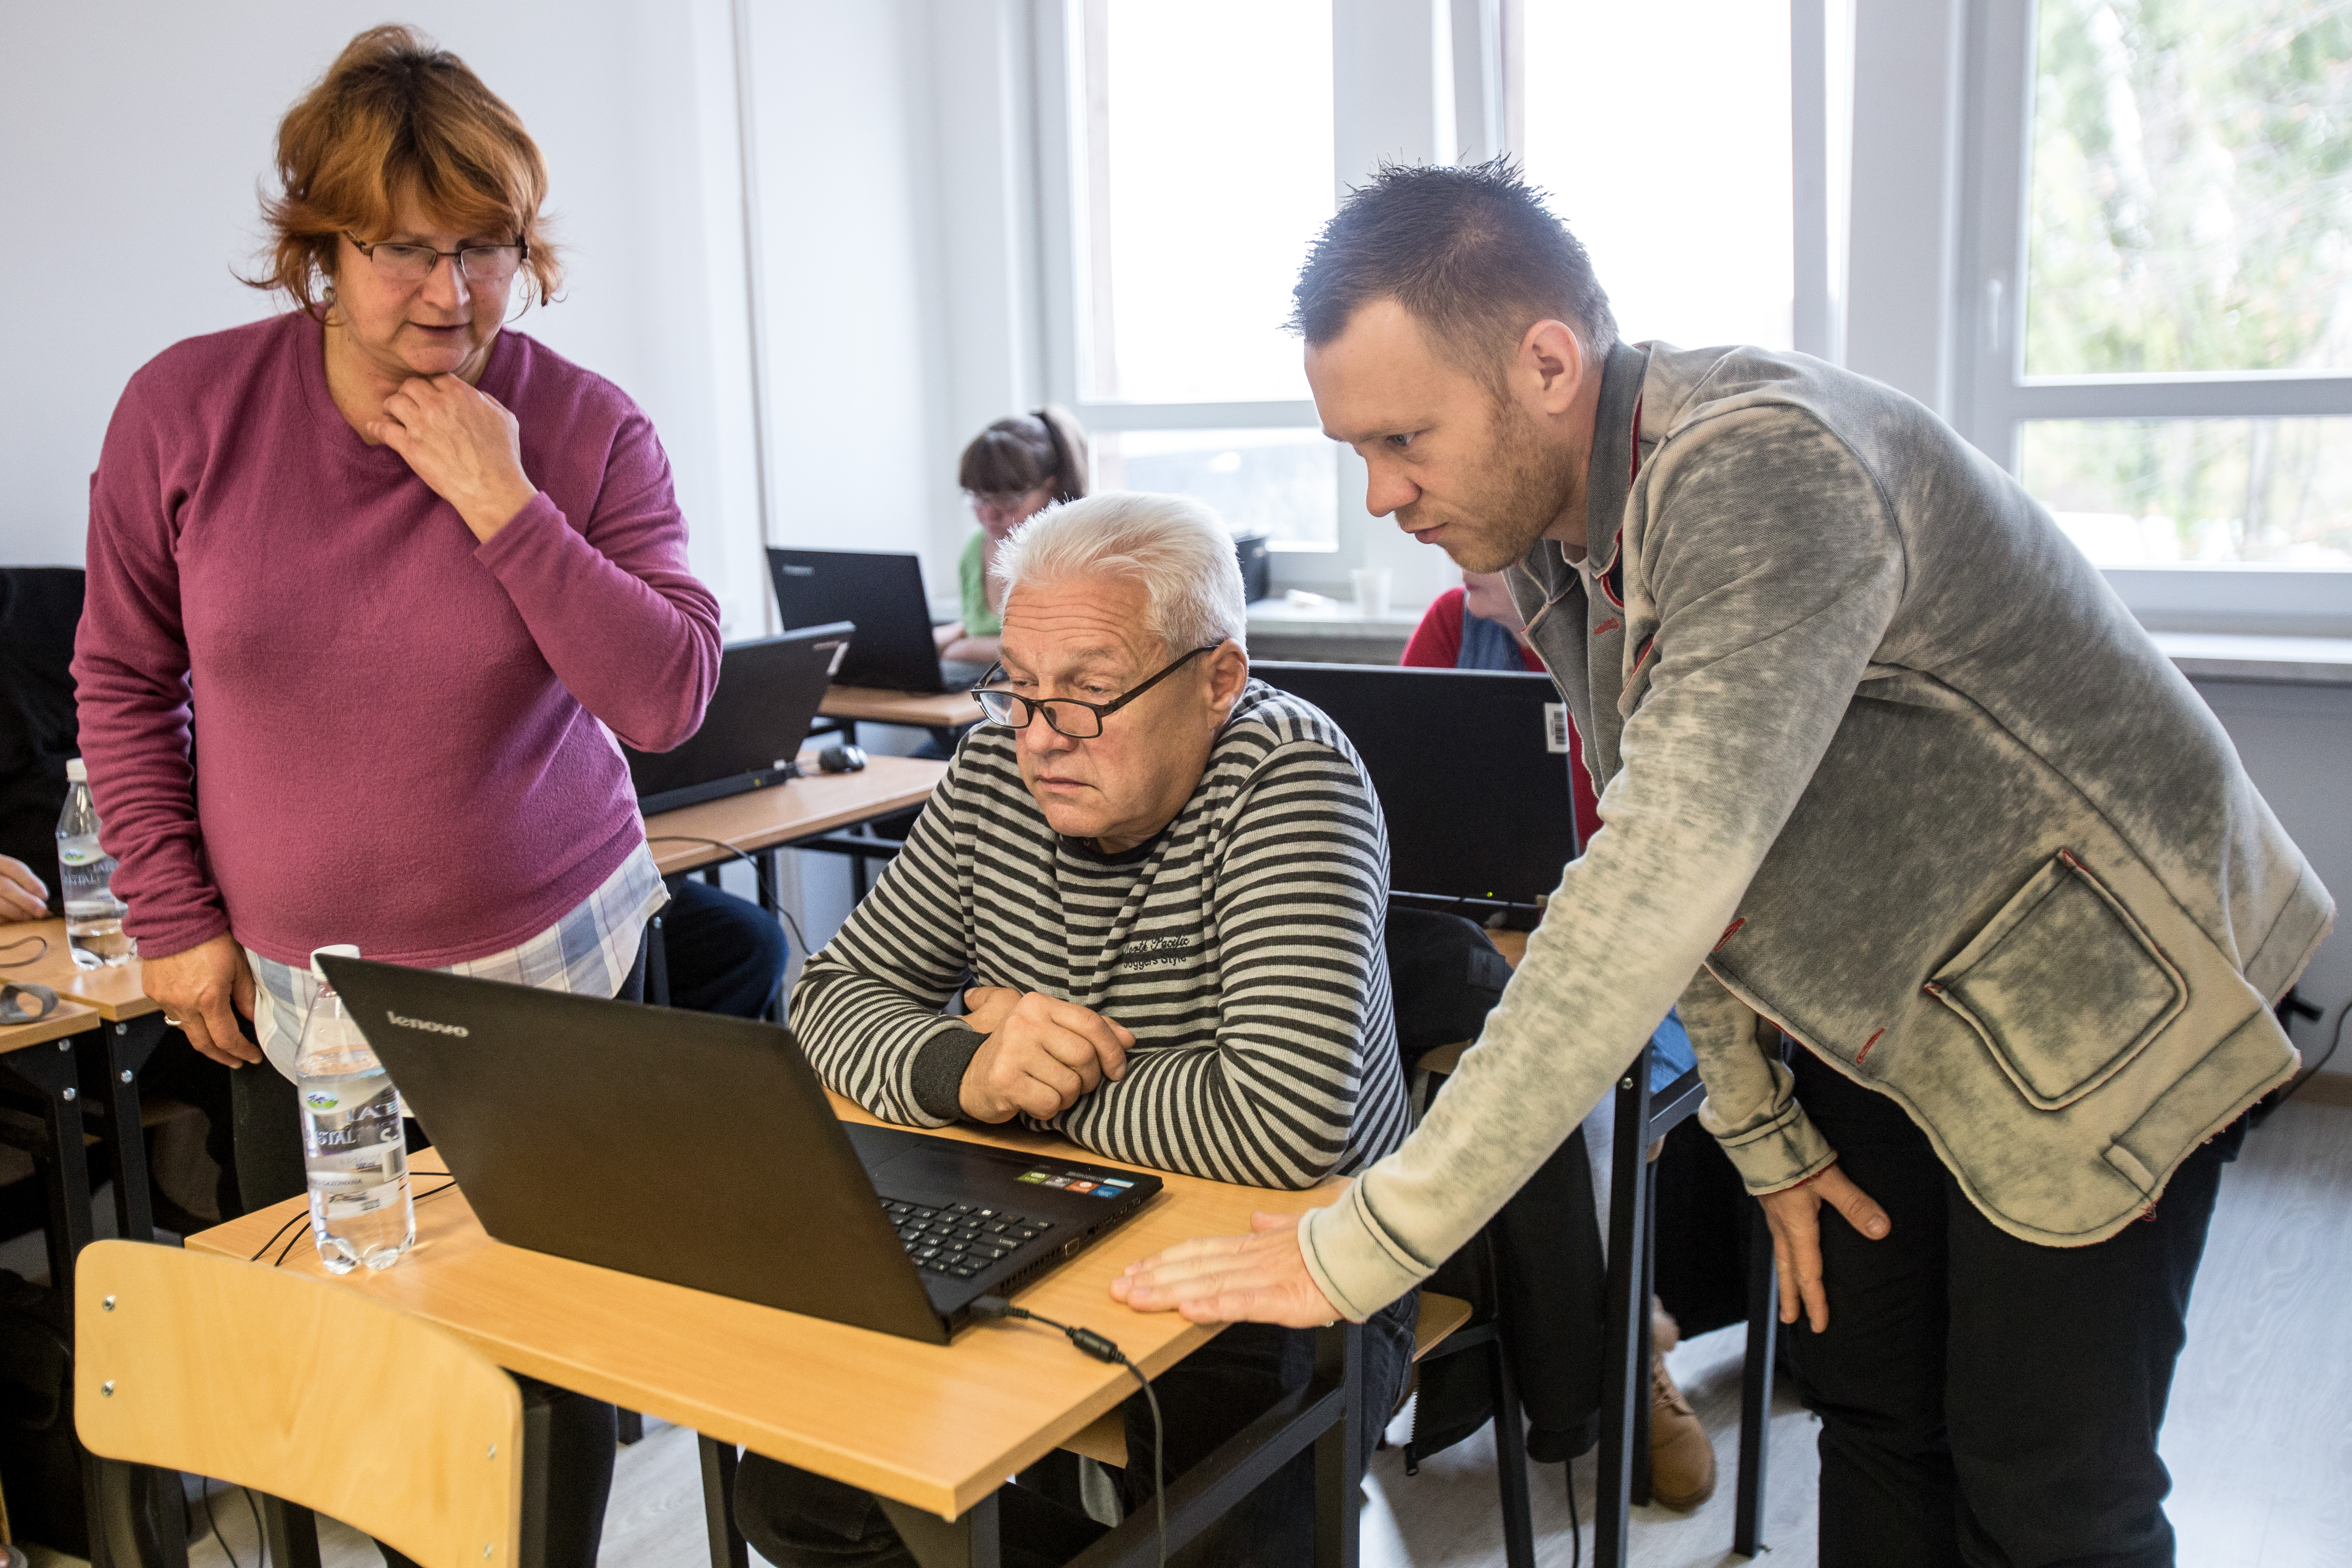 An elderly man sitting in front of a laptop during a computer course listening to the trainer's instructions.